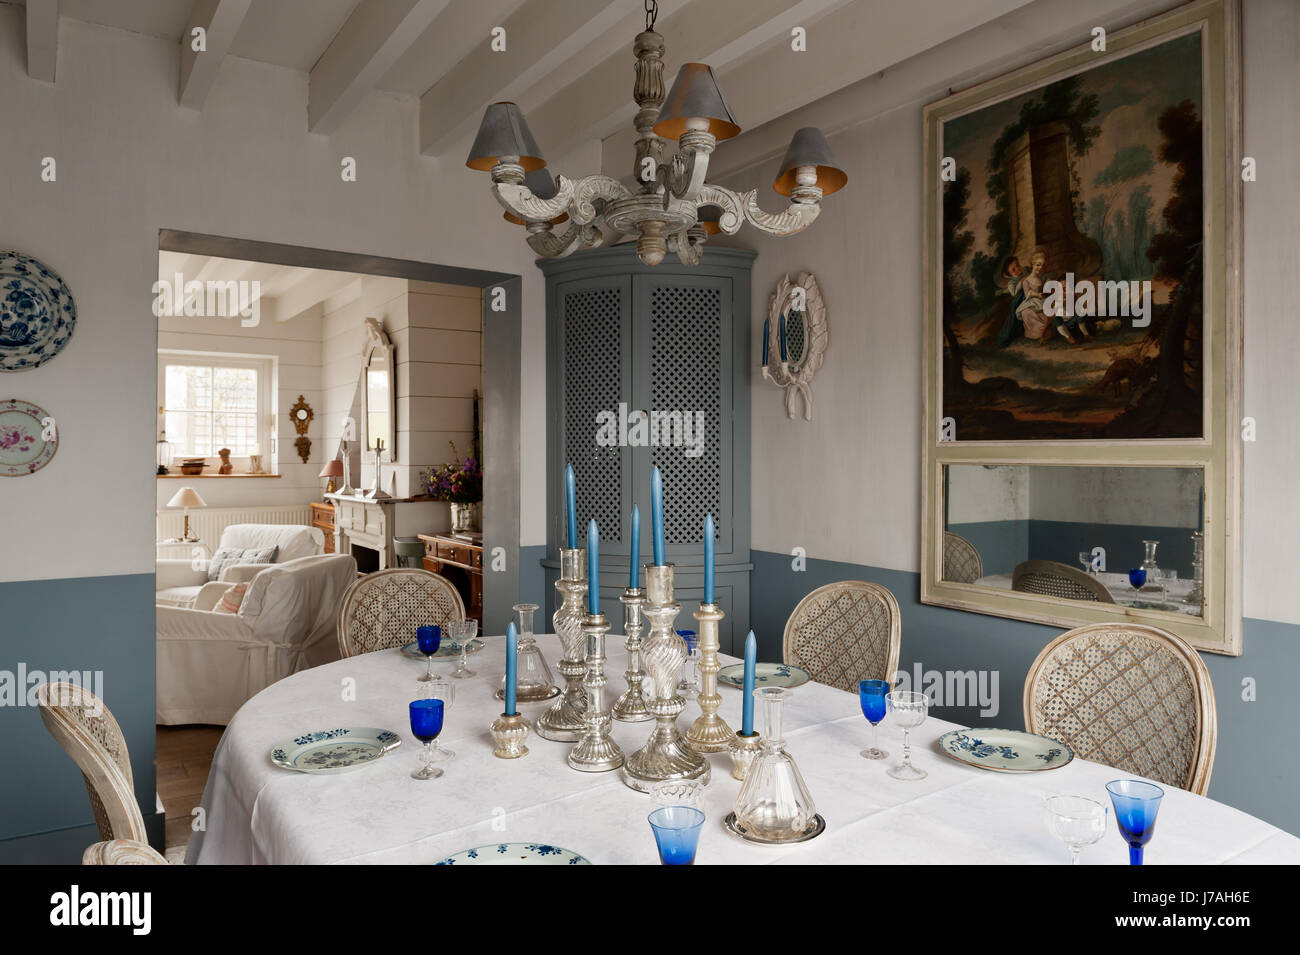 Silverware candlesticks on dining table with corner cabinet and 18th century French trumeau mirror - Stock Image